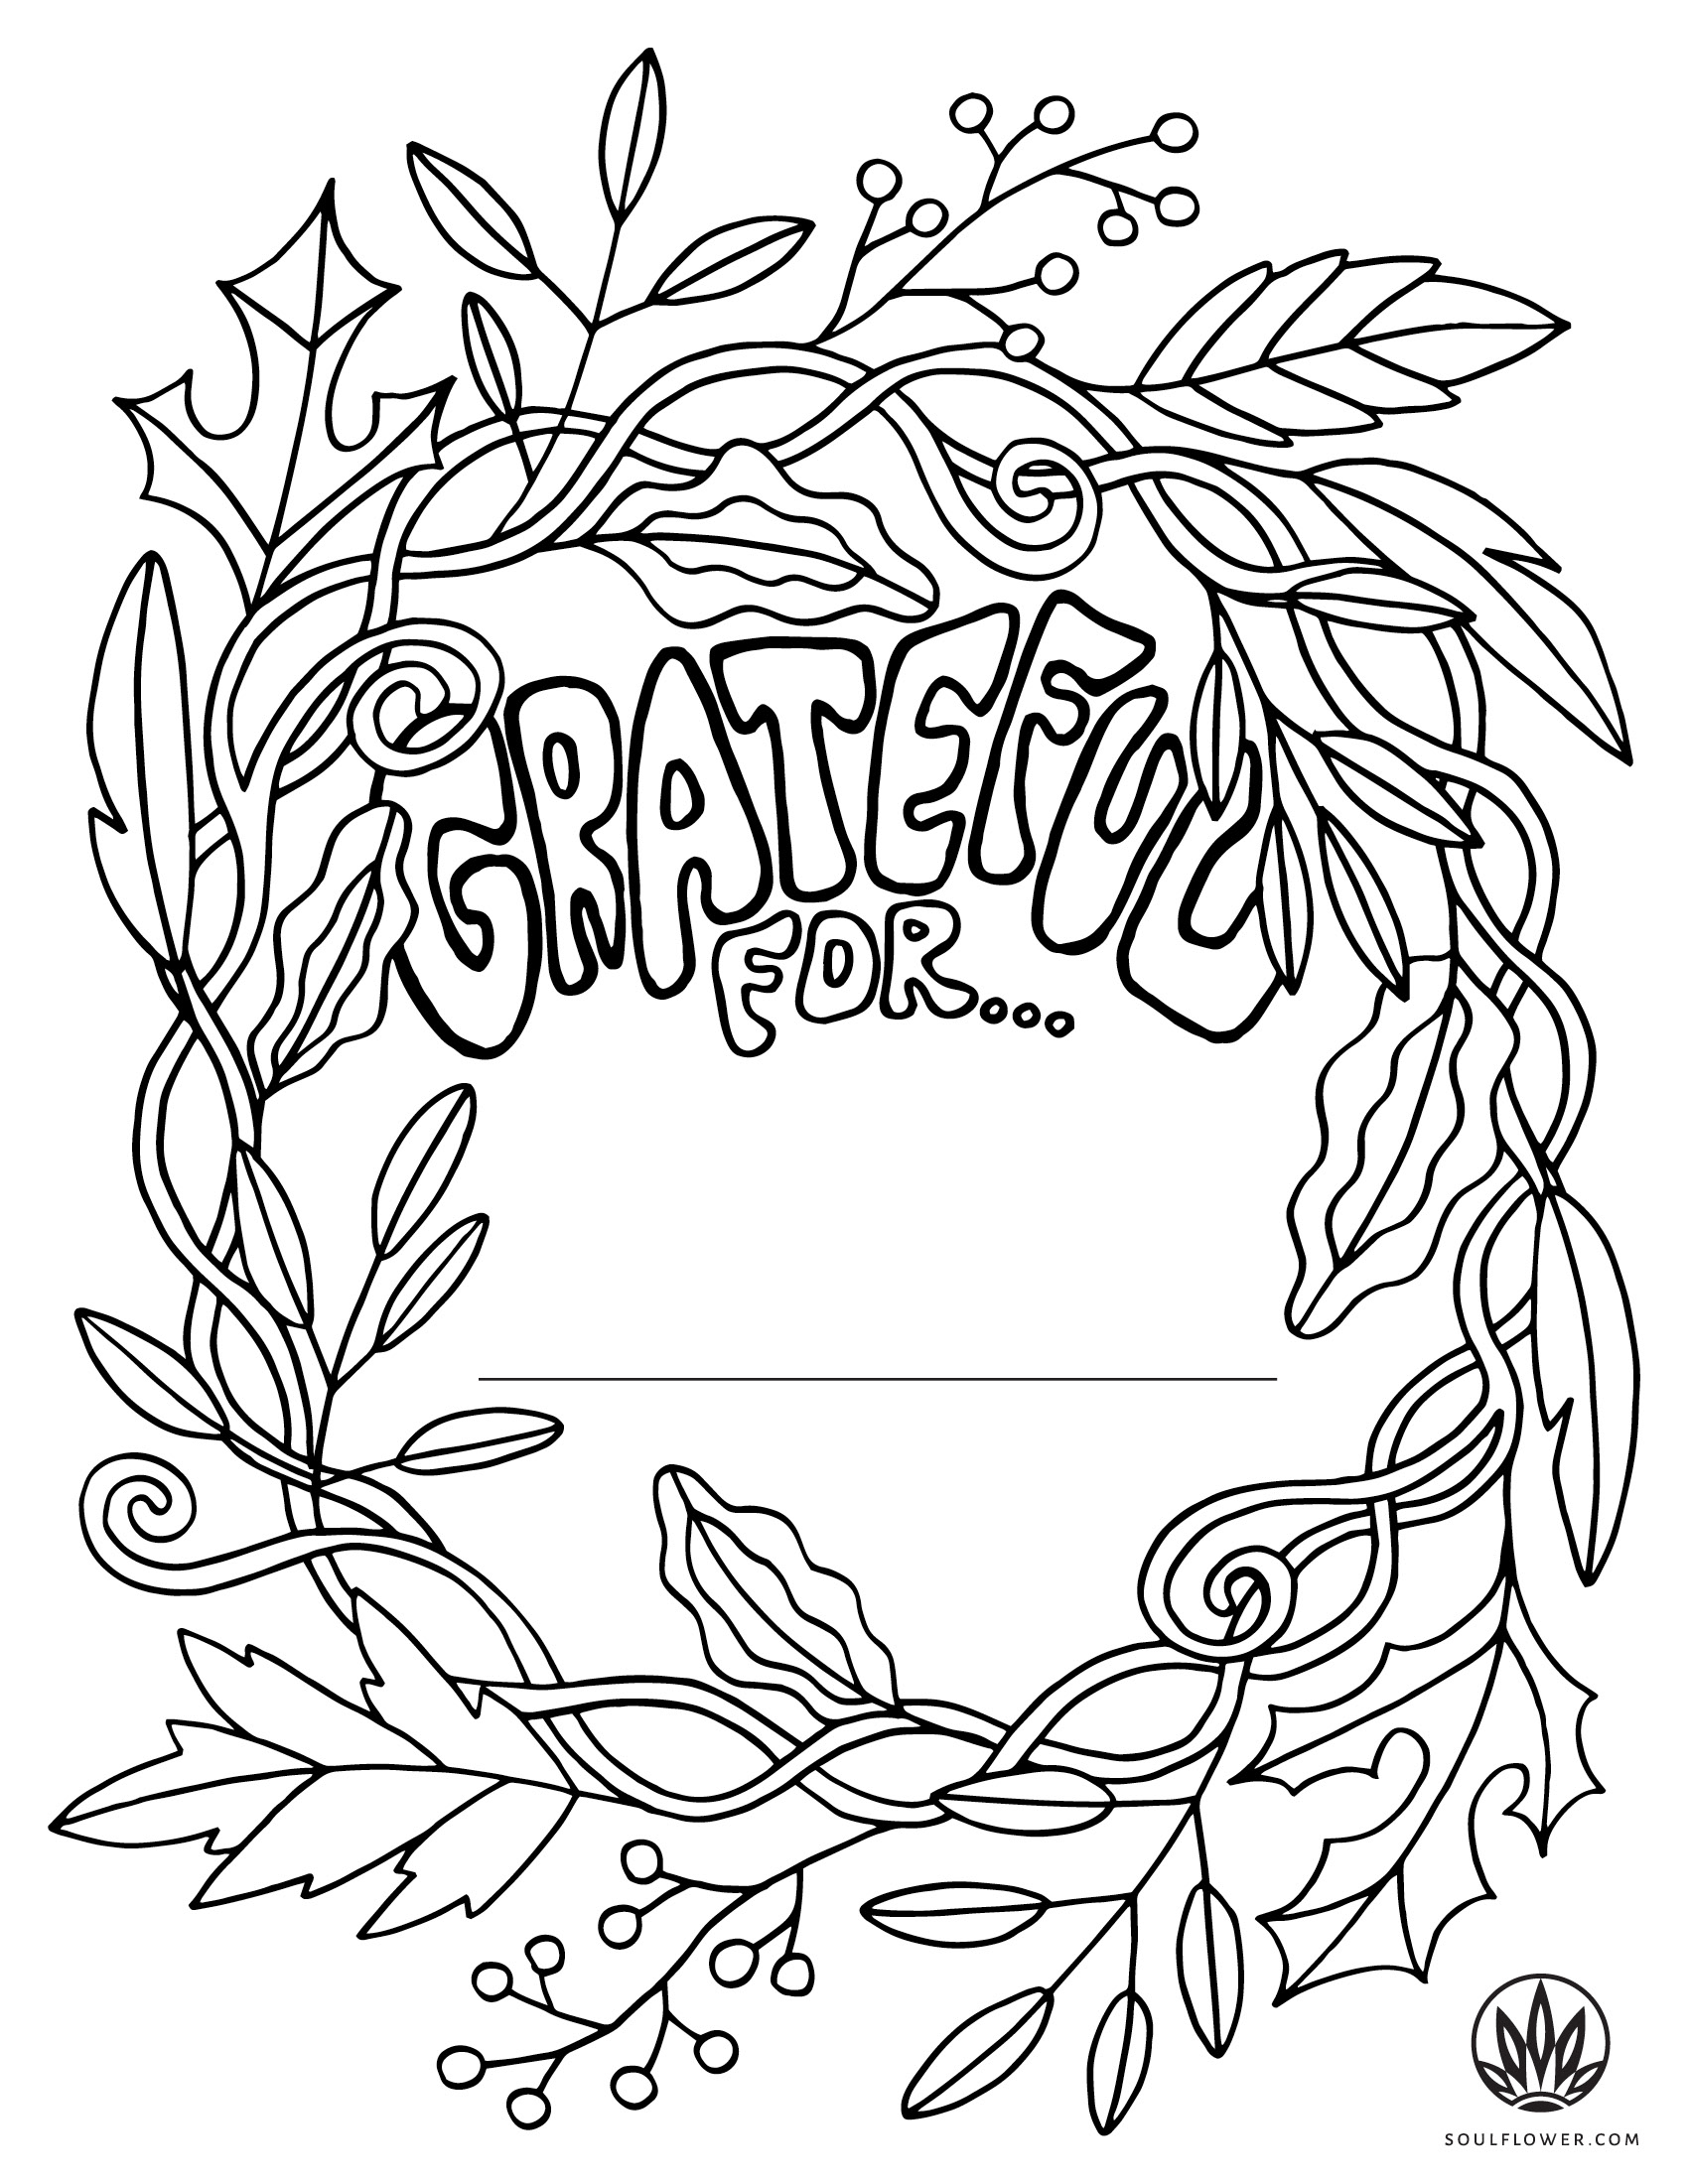 sf thanksgiving coloring page grateful for - Thanksgiving Coloring Page - Grateful Coloring Page